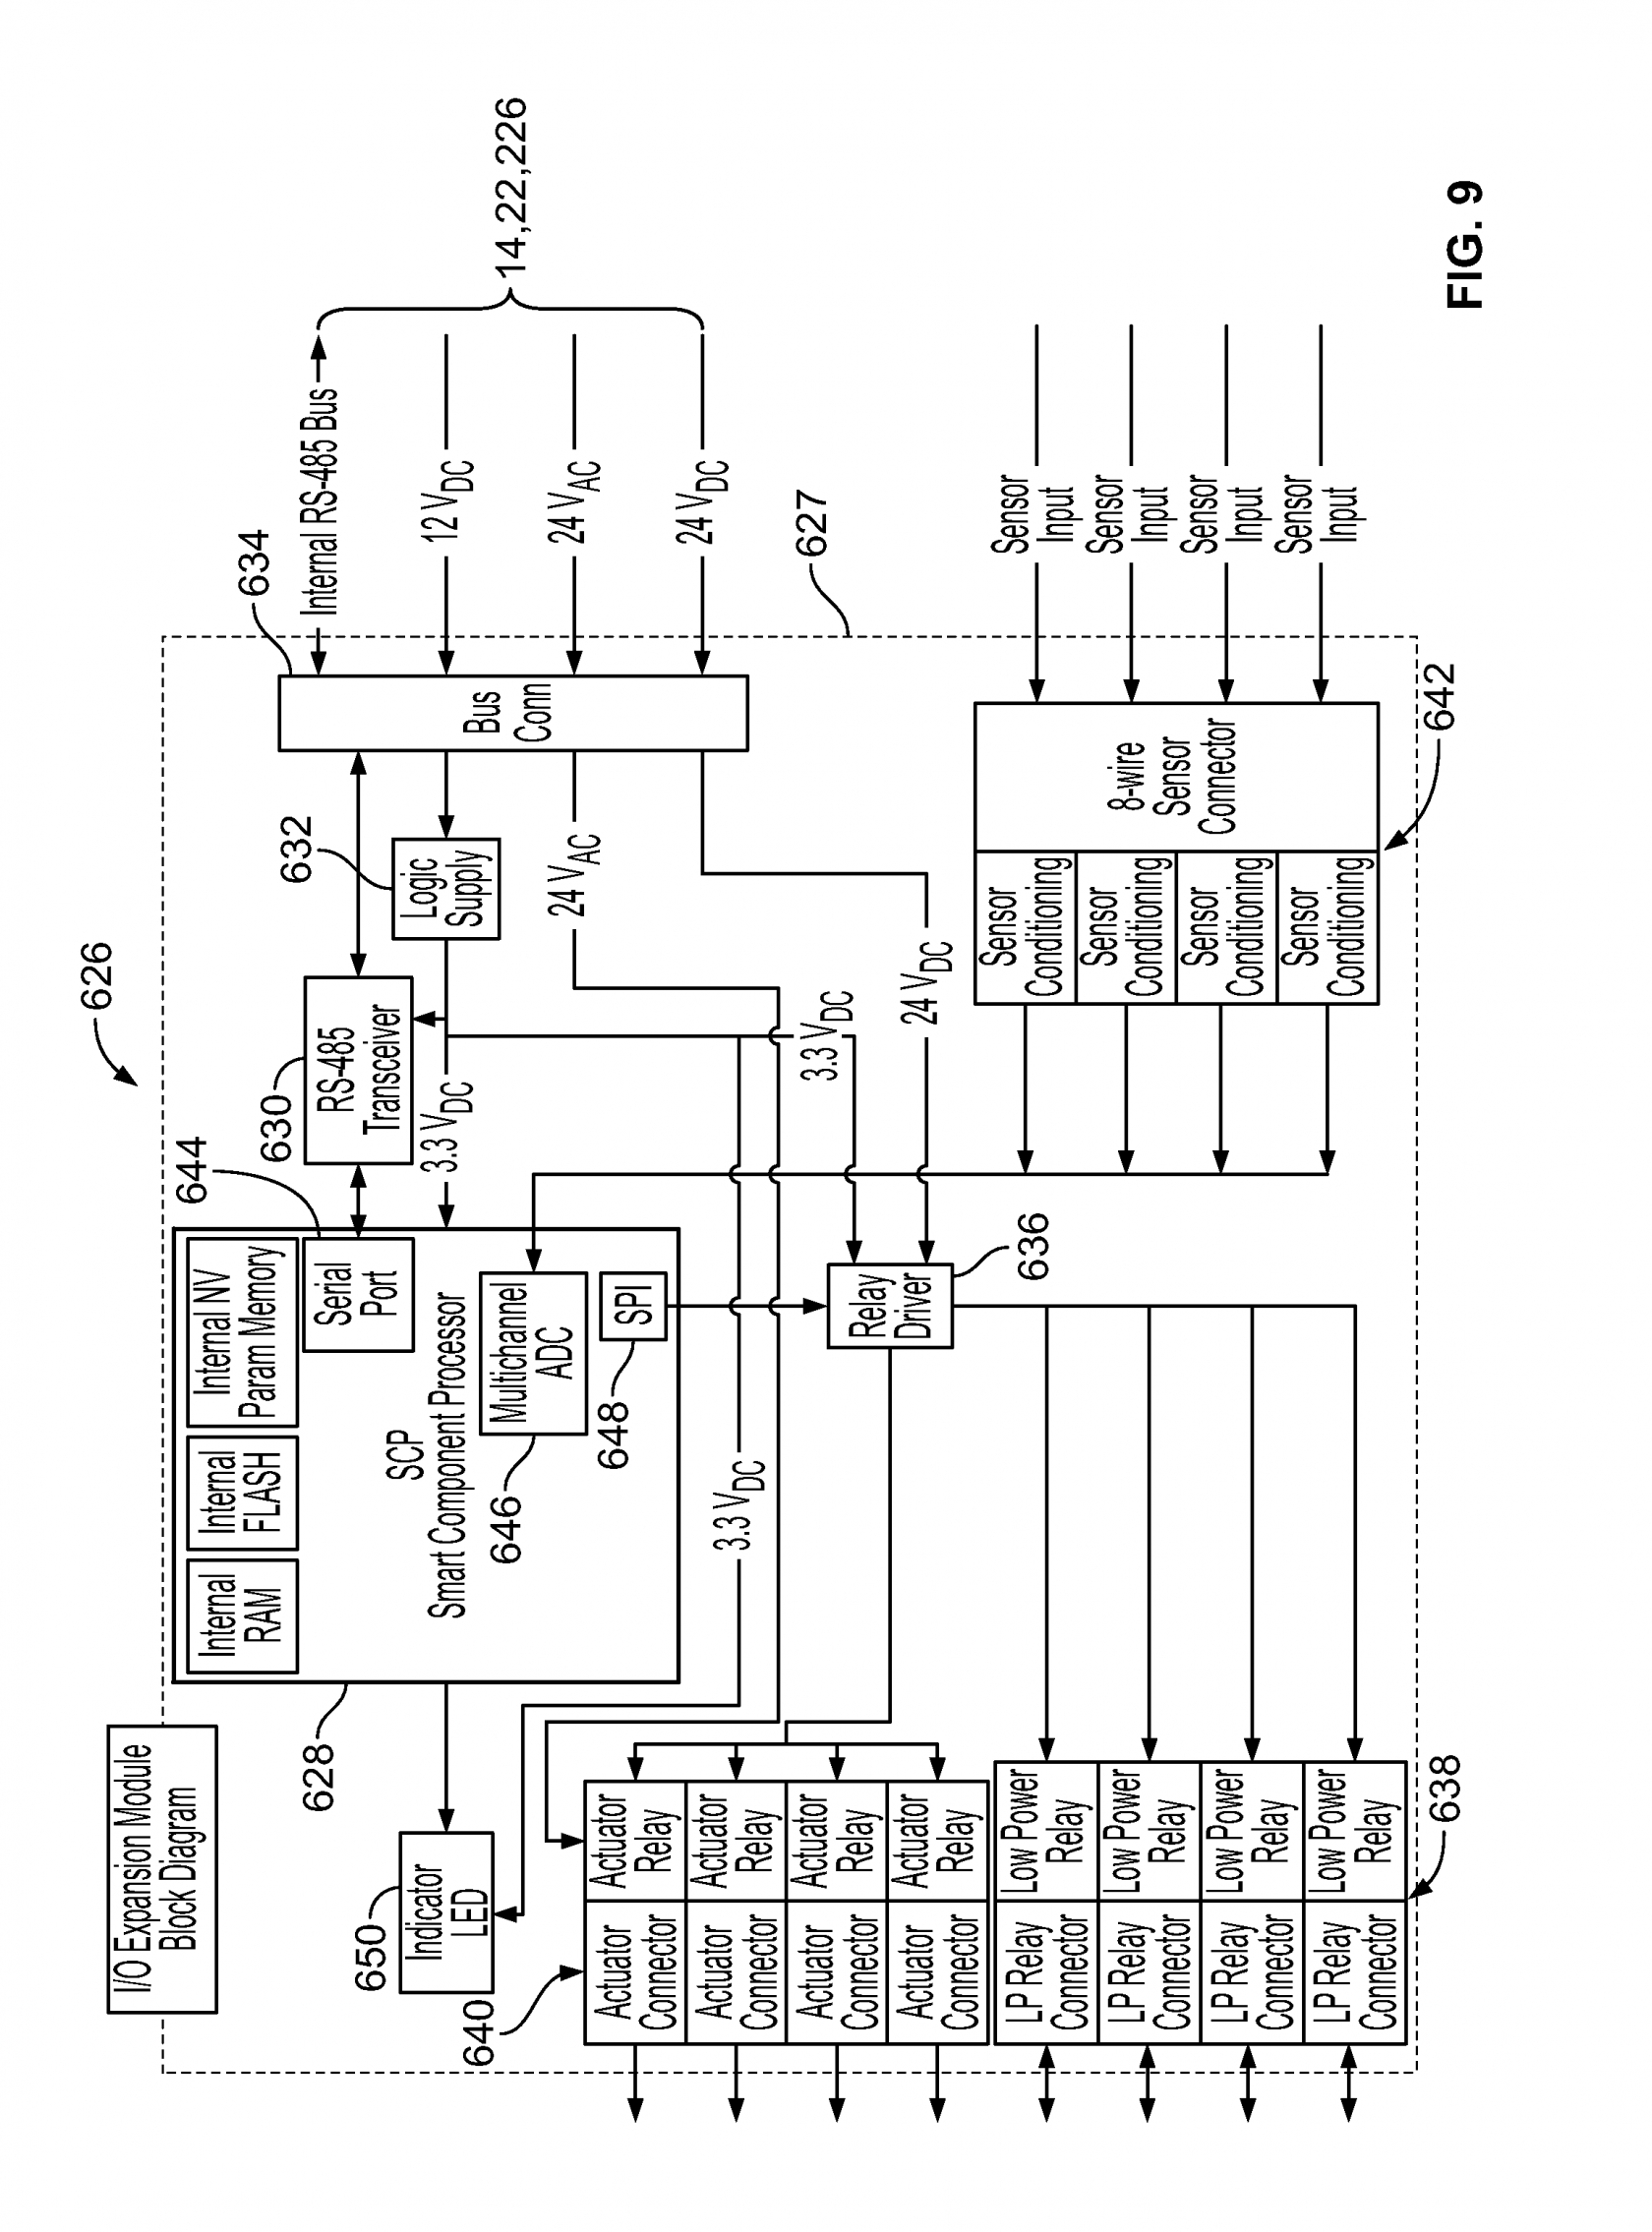 thermospa wiring diagram Collection-Thermospa Wiring Diagram Elegant Sta Rite Pump Wiring Diagram Pool Ga 400 Series Spares Swimming 5-a